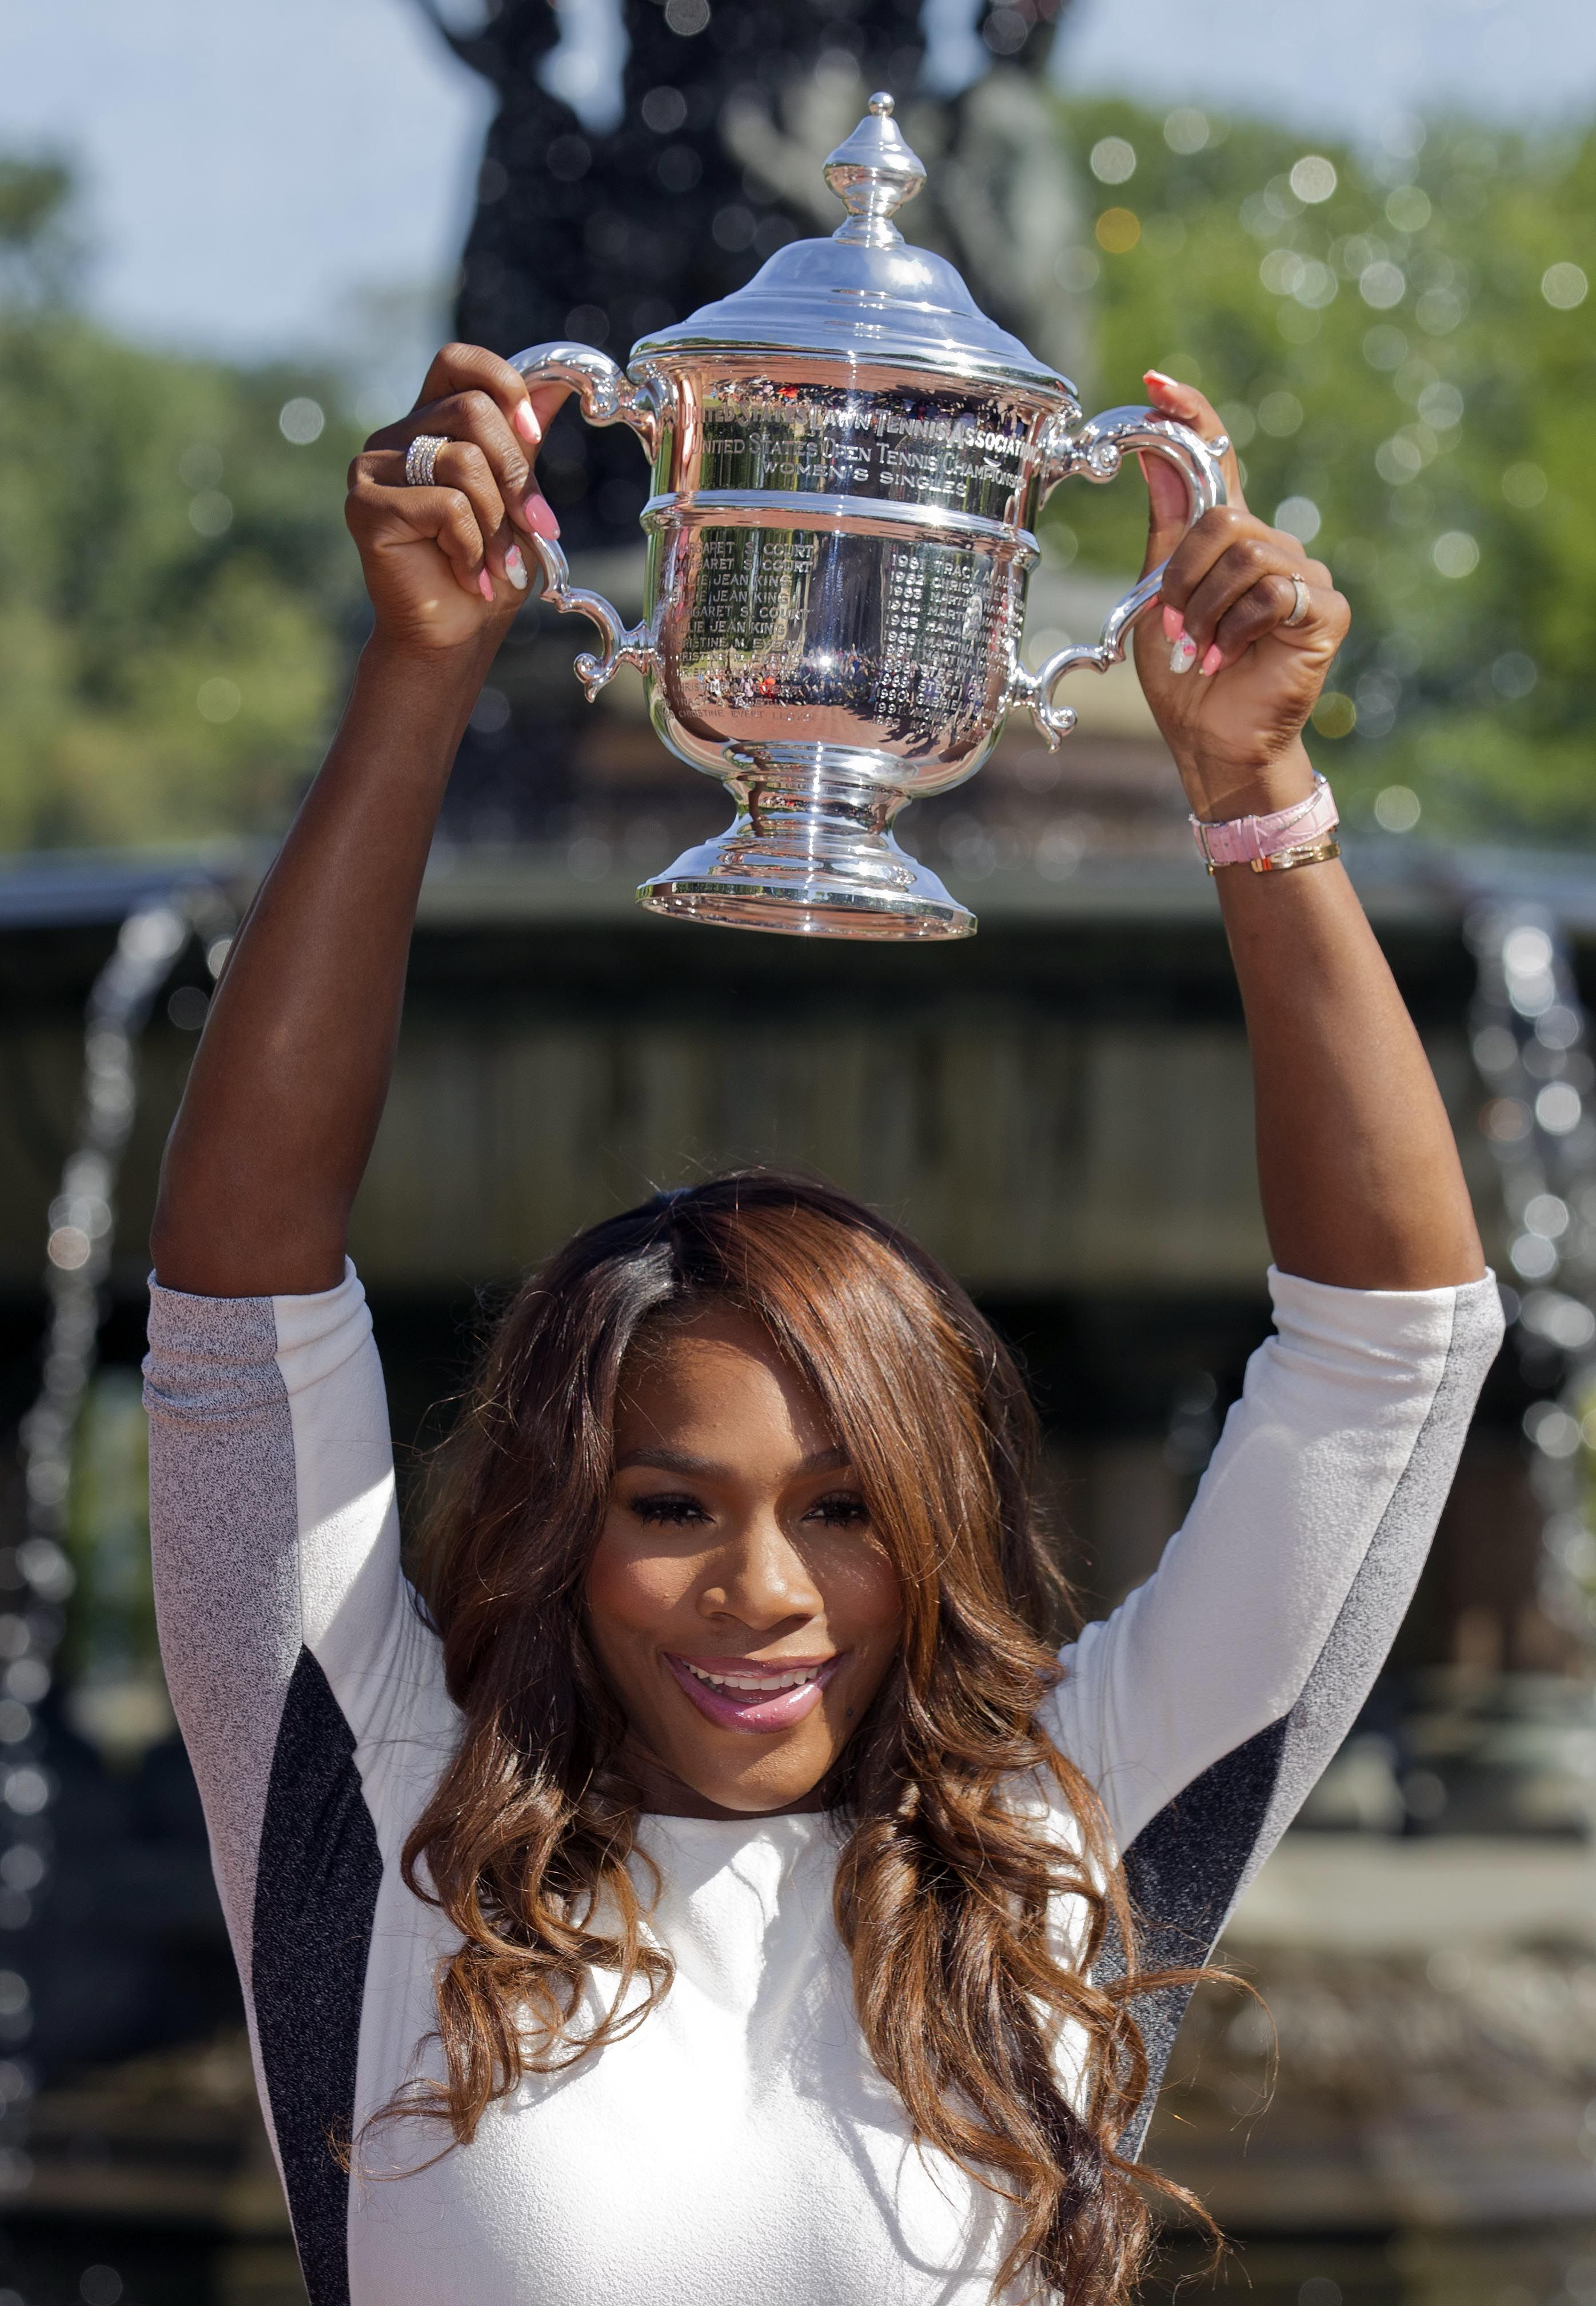 Top seeded Serena Williams beat second seeded Victoria Azarenka for her fifth U.S. Open championship and the 17th Grand Slam title of her career.